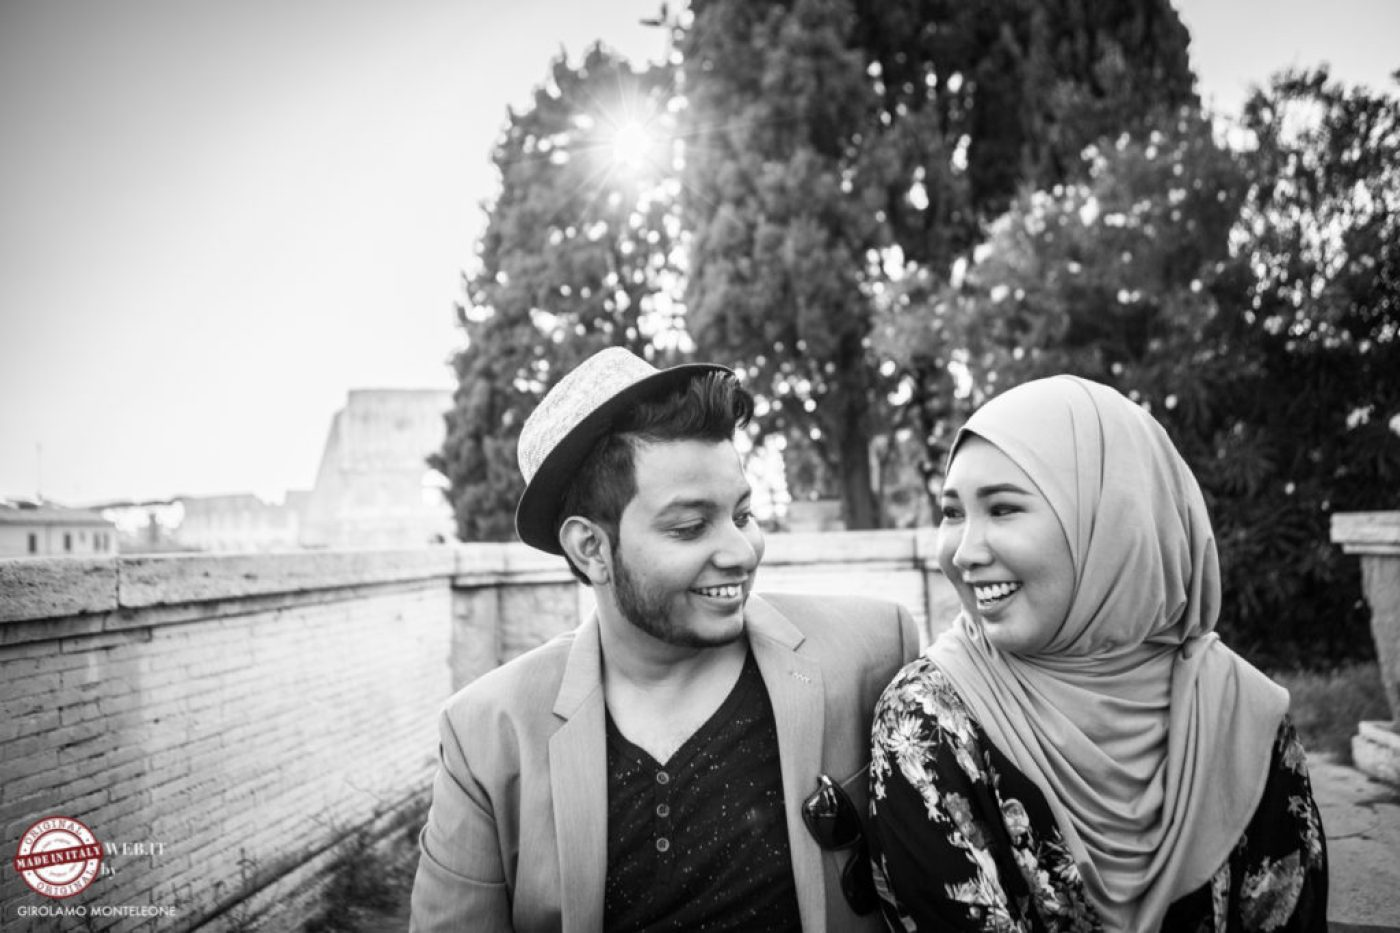 anguilla muslim girl personals The truth about dating muslim women  muslim dating, muslim girls, muslim women  what to know before dating danish women.